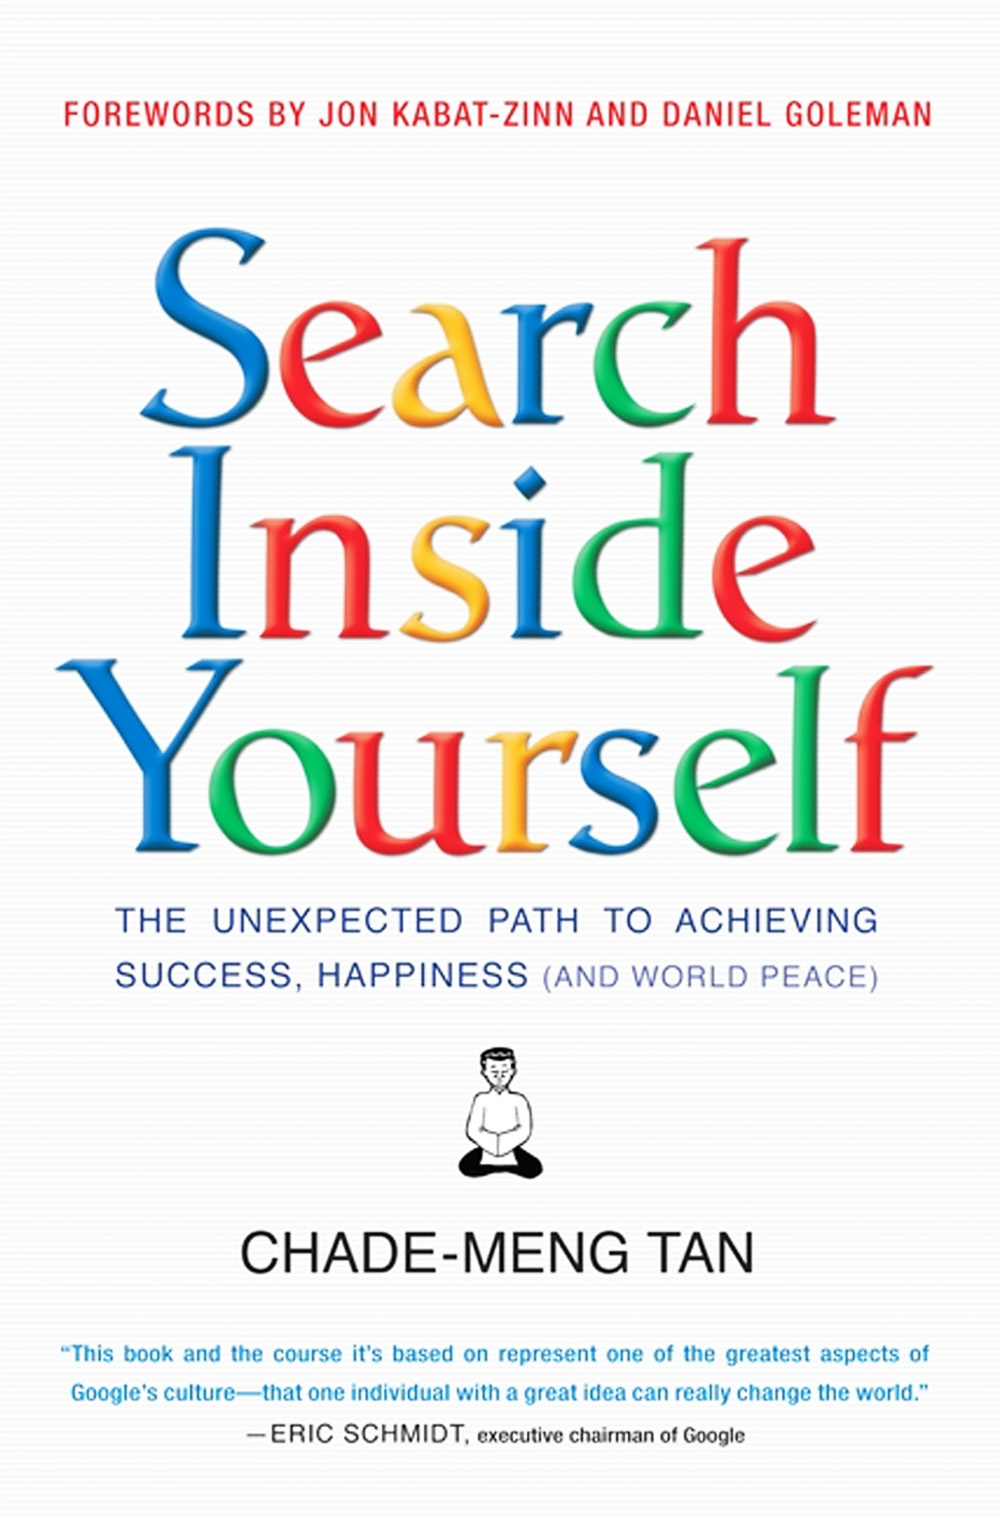 Search-Inside-Yourself-Chade-Meng-Tan.jpg